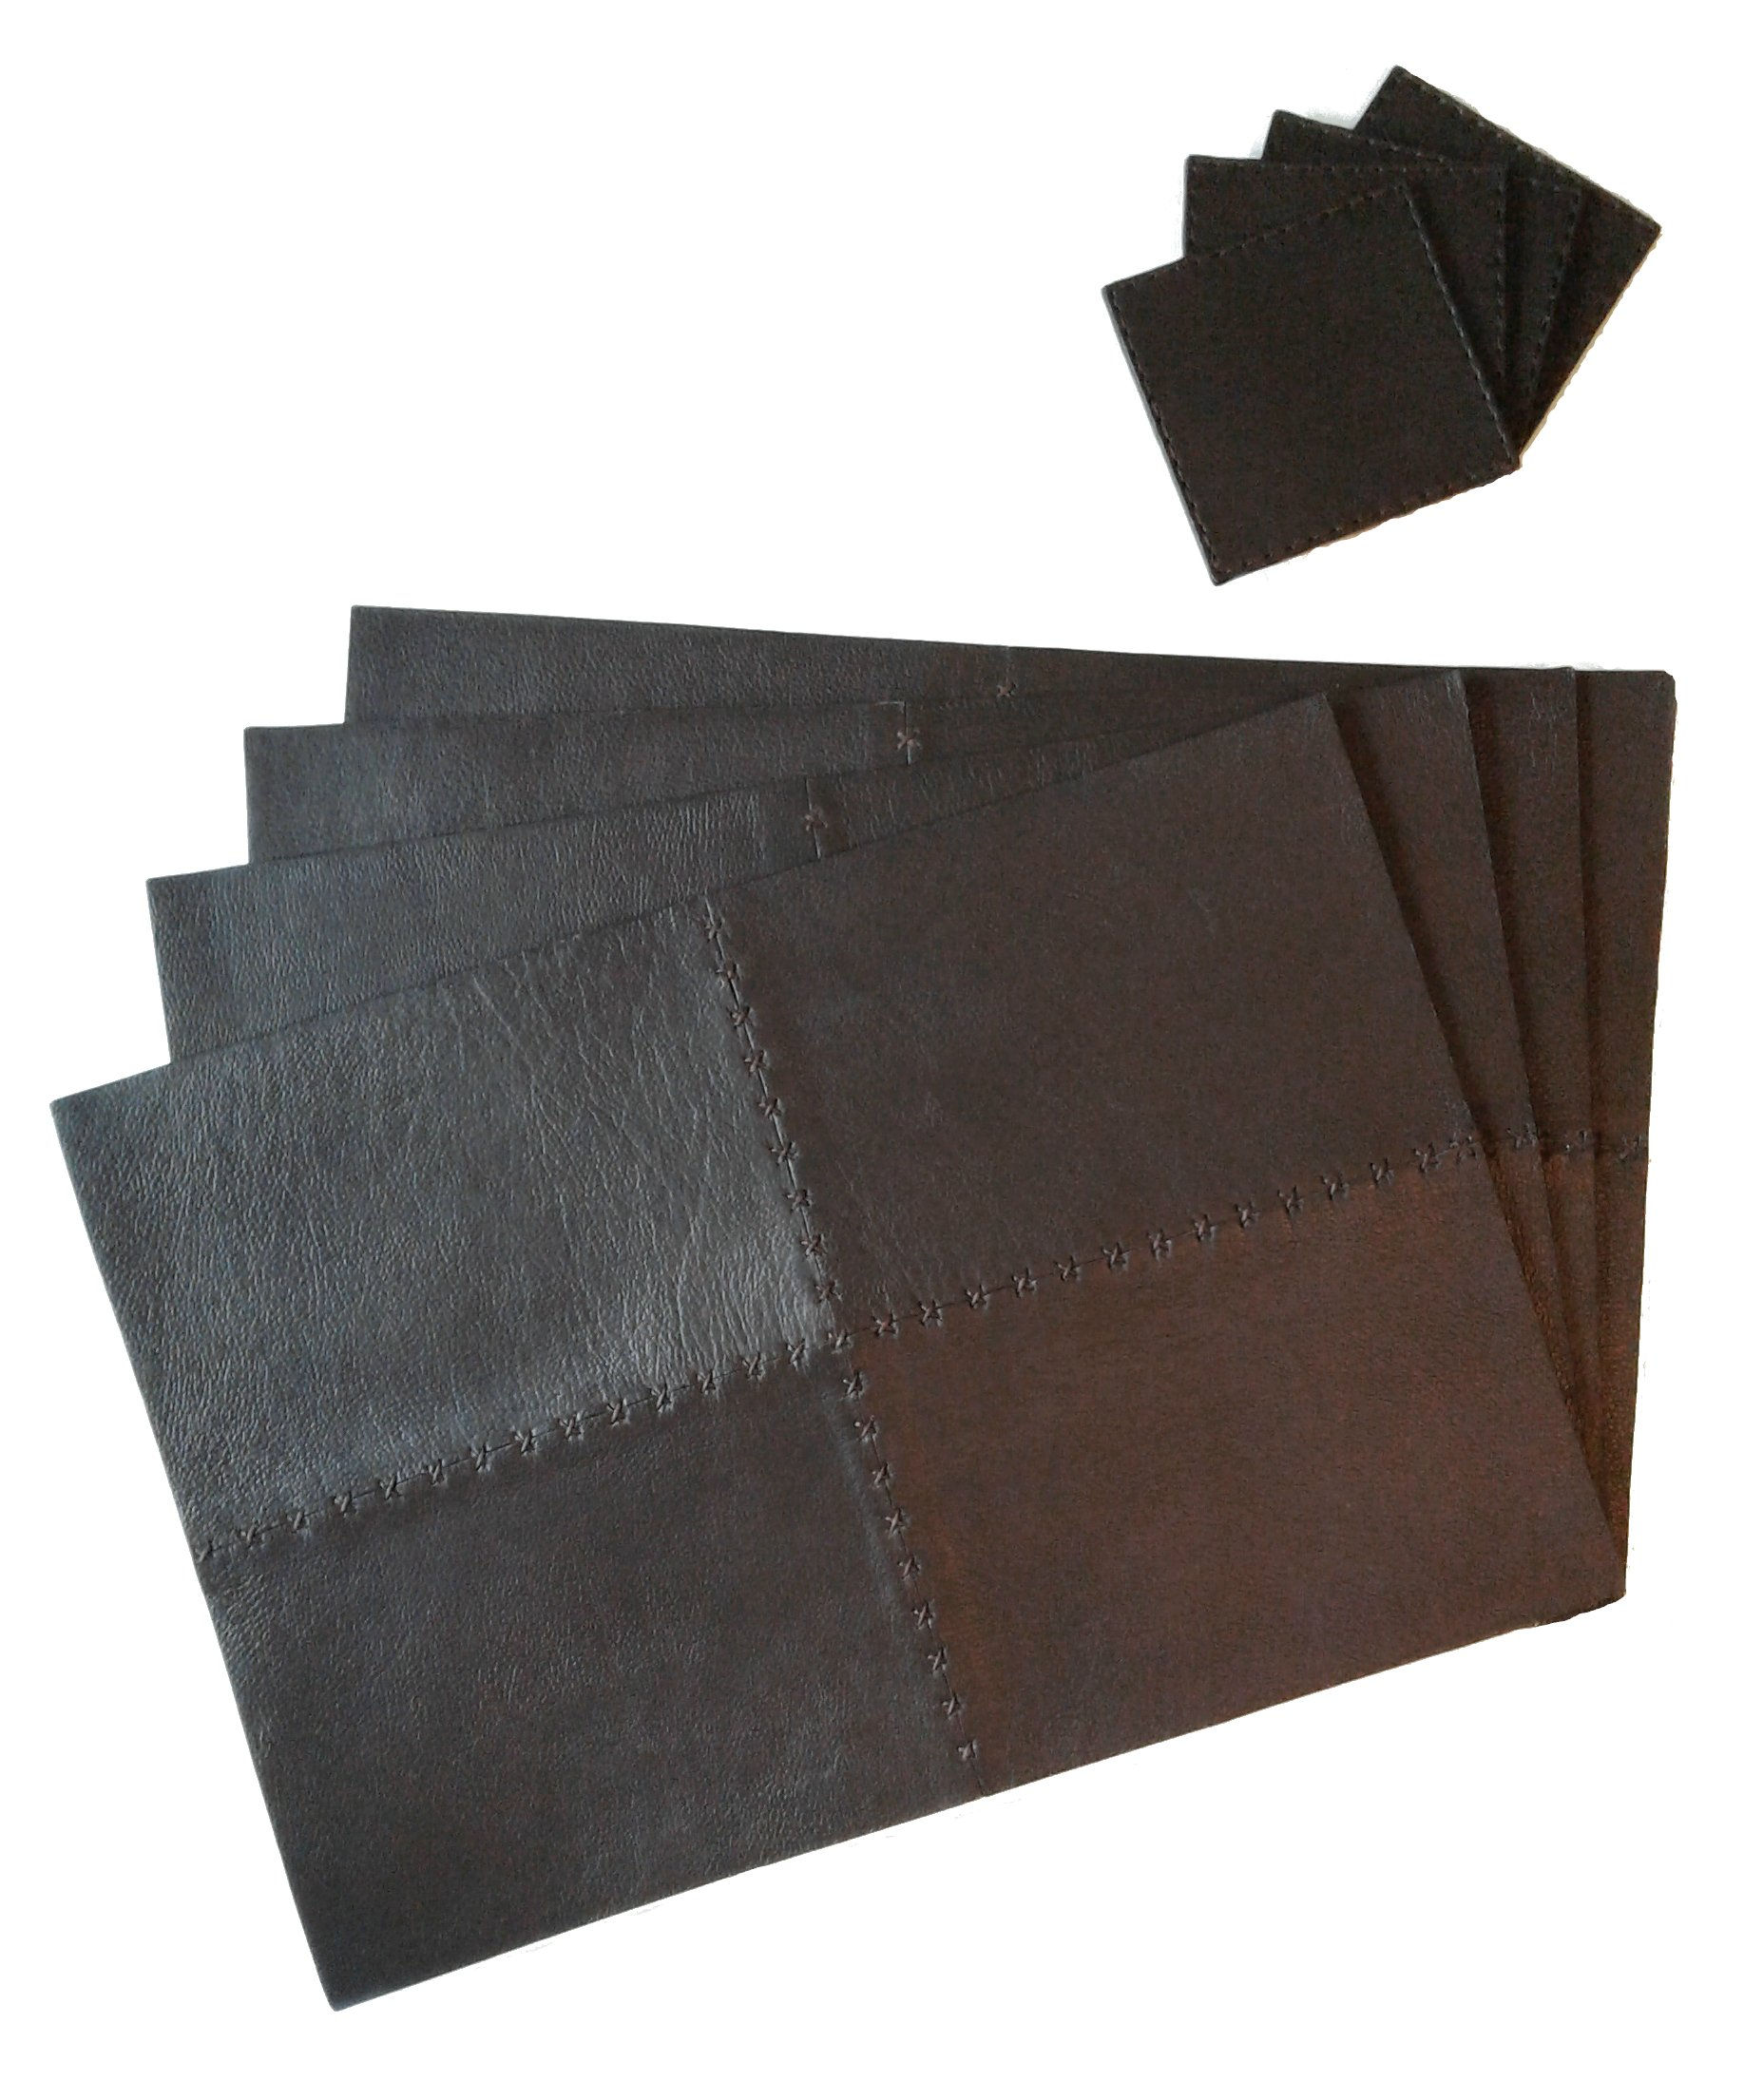 Set of 4 Genuine Leather Placemats Set With Matching Coasters (Chocolate) Luxury High-end Design in Kitchen and Dining Table - Easy to Clean Place Mat 17x12 inches Coaster 4x4 inches